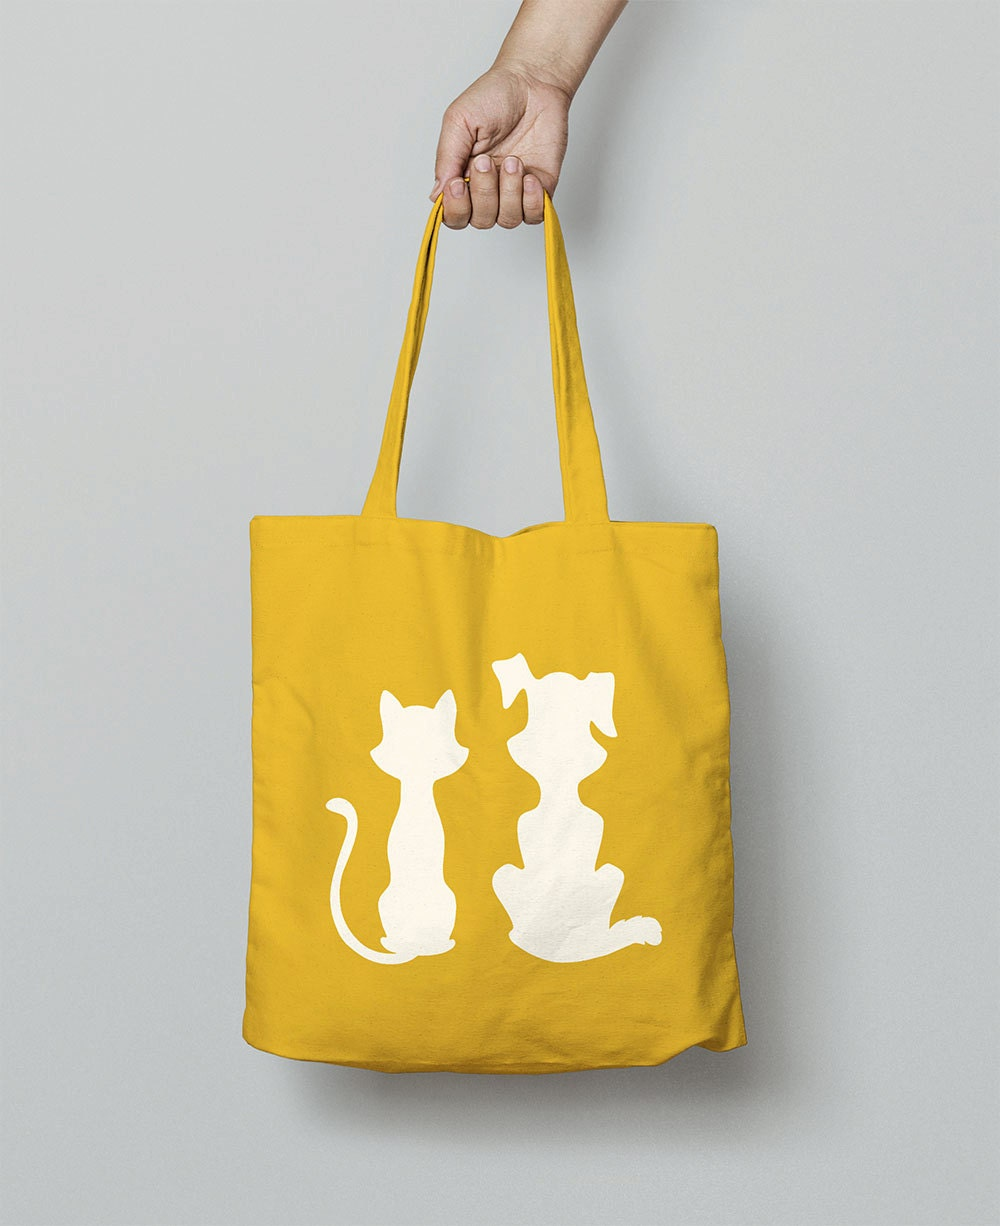 Shopping Bag  Cat And Dog Tote Bag  Canvas Bag  Shoulder Bag  Canvas Tote Bag  Christmas Gift For Girlfriend  Animal Gift Women  Cats